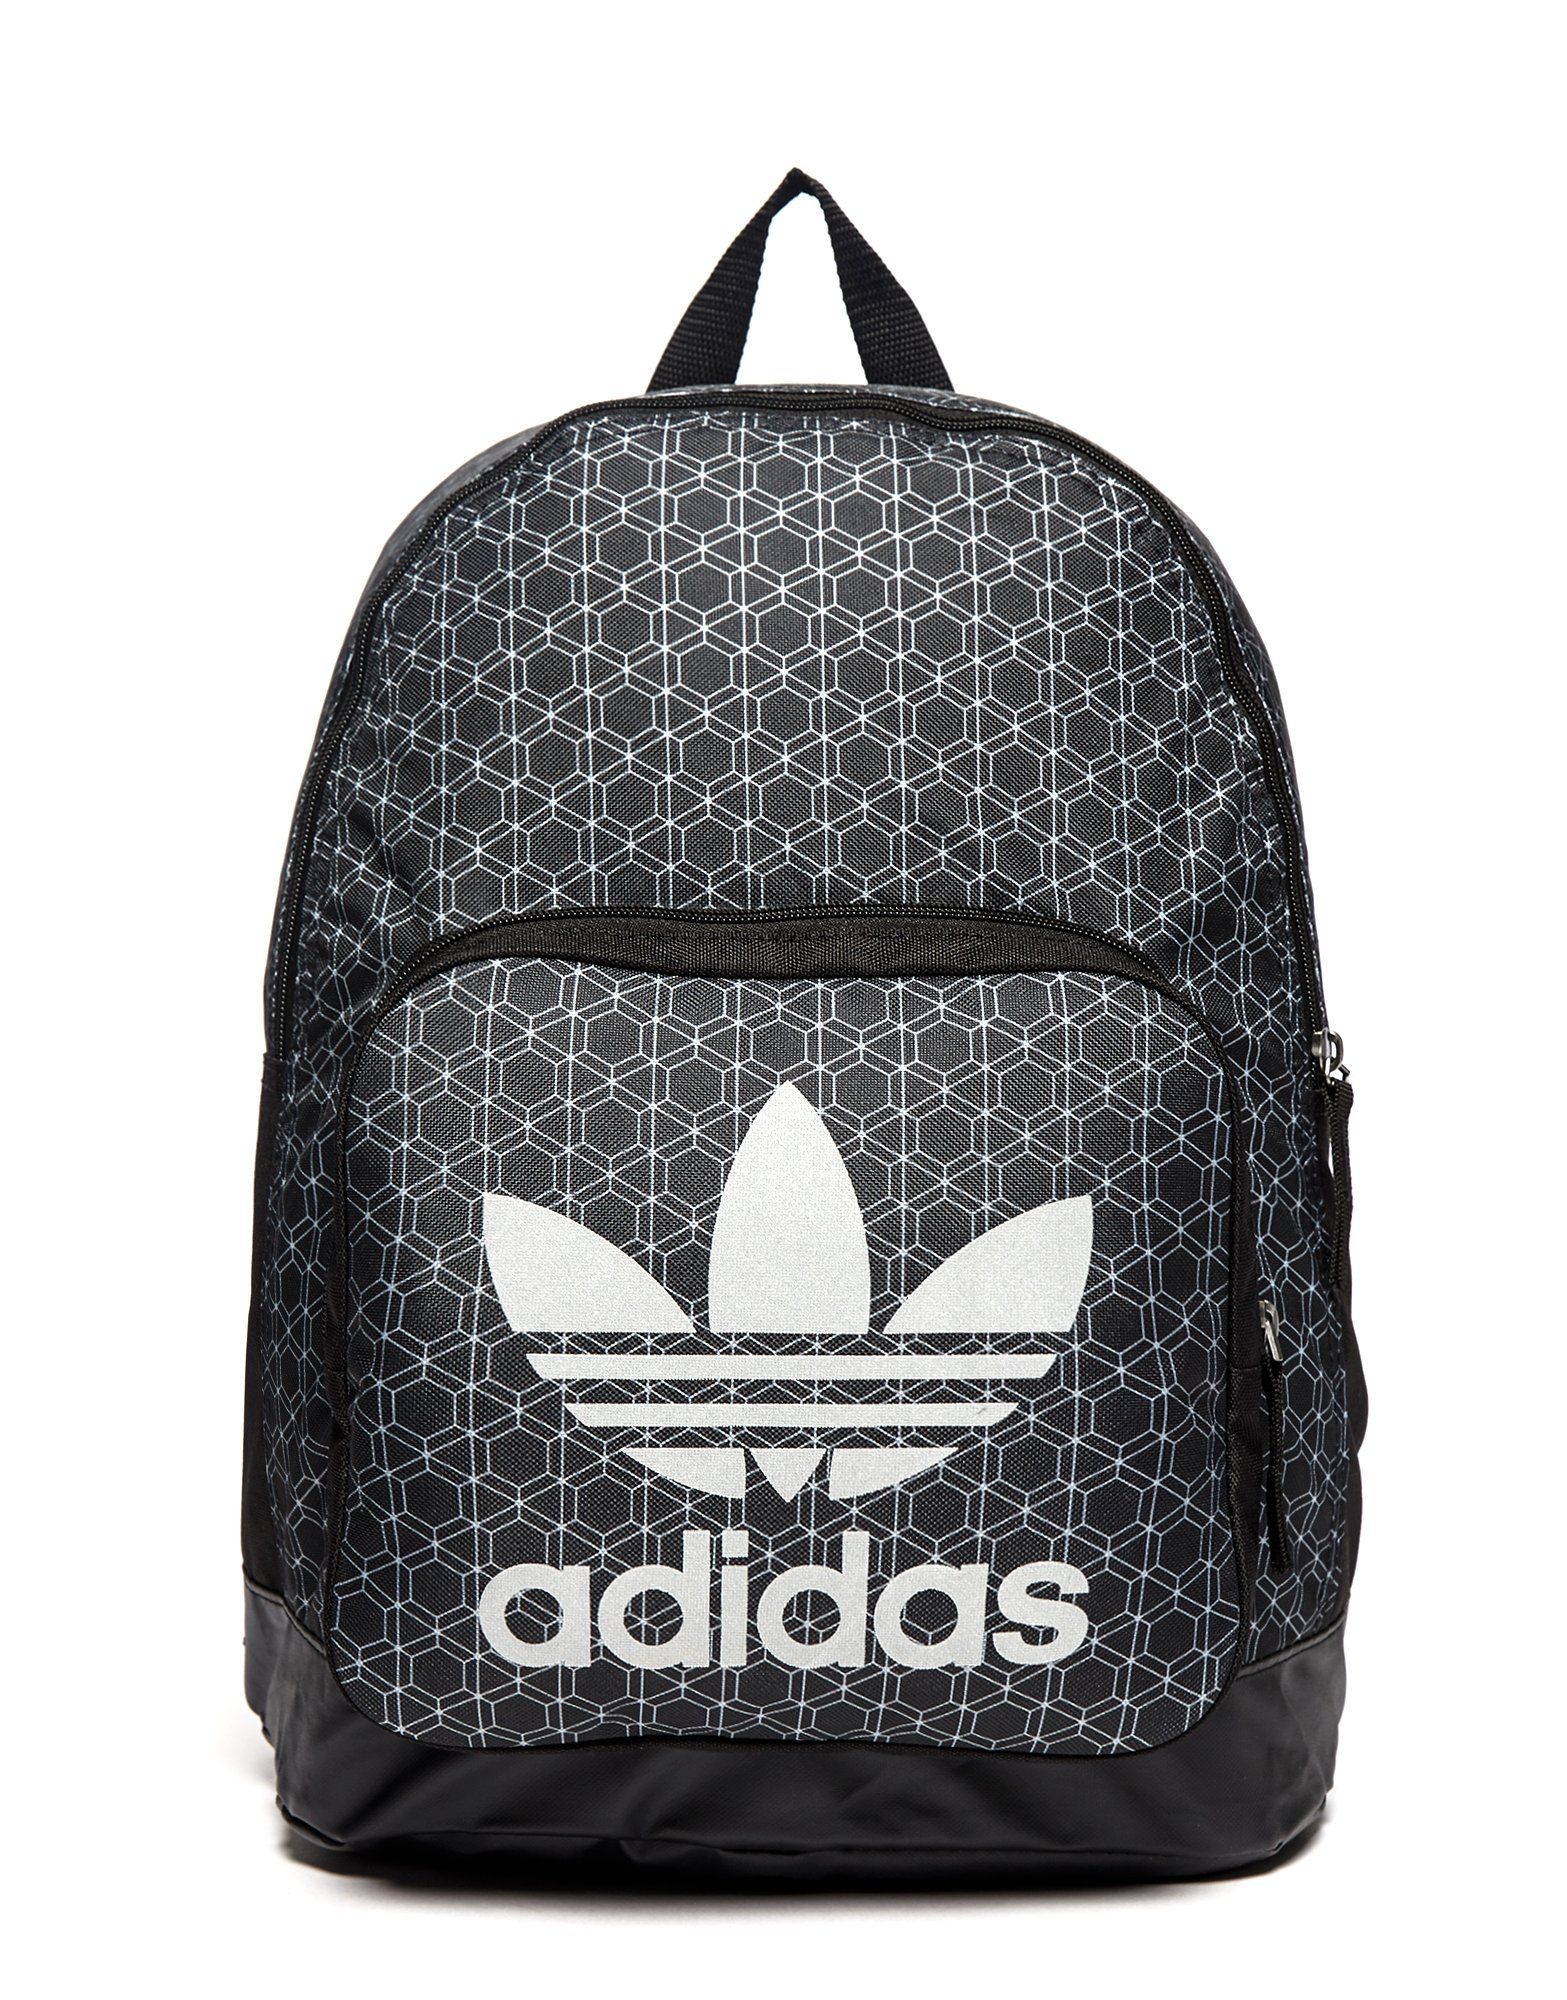 cc0ad0e1d4 adidas Originals Street Run Backpack